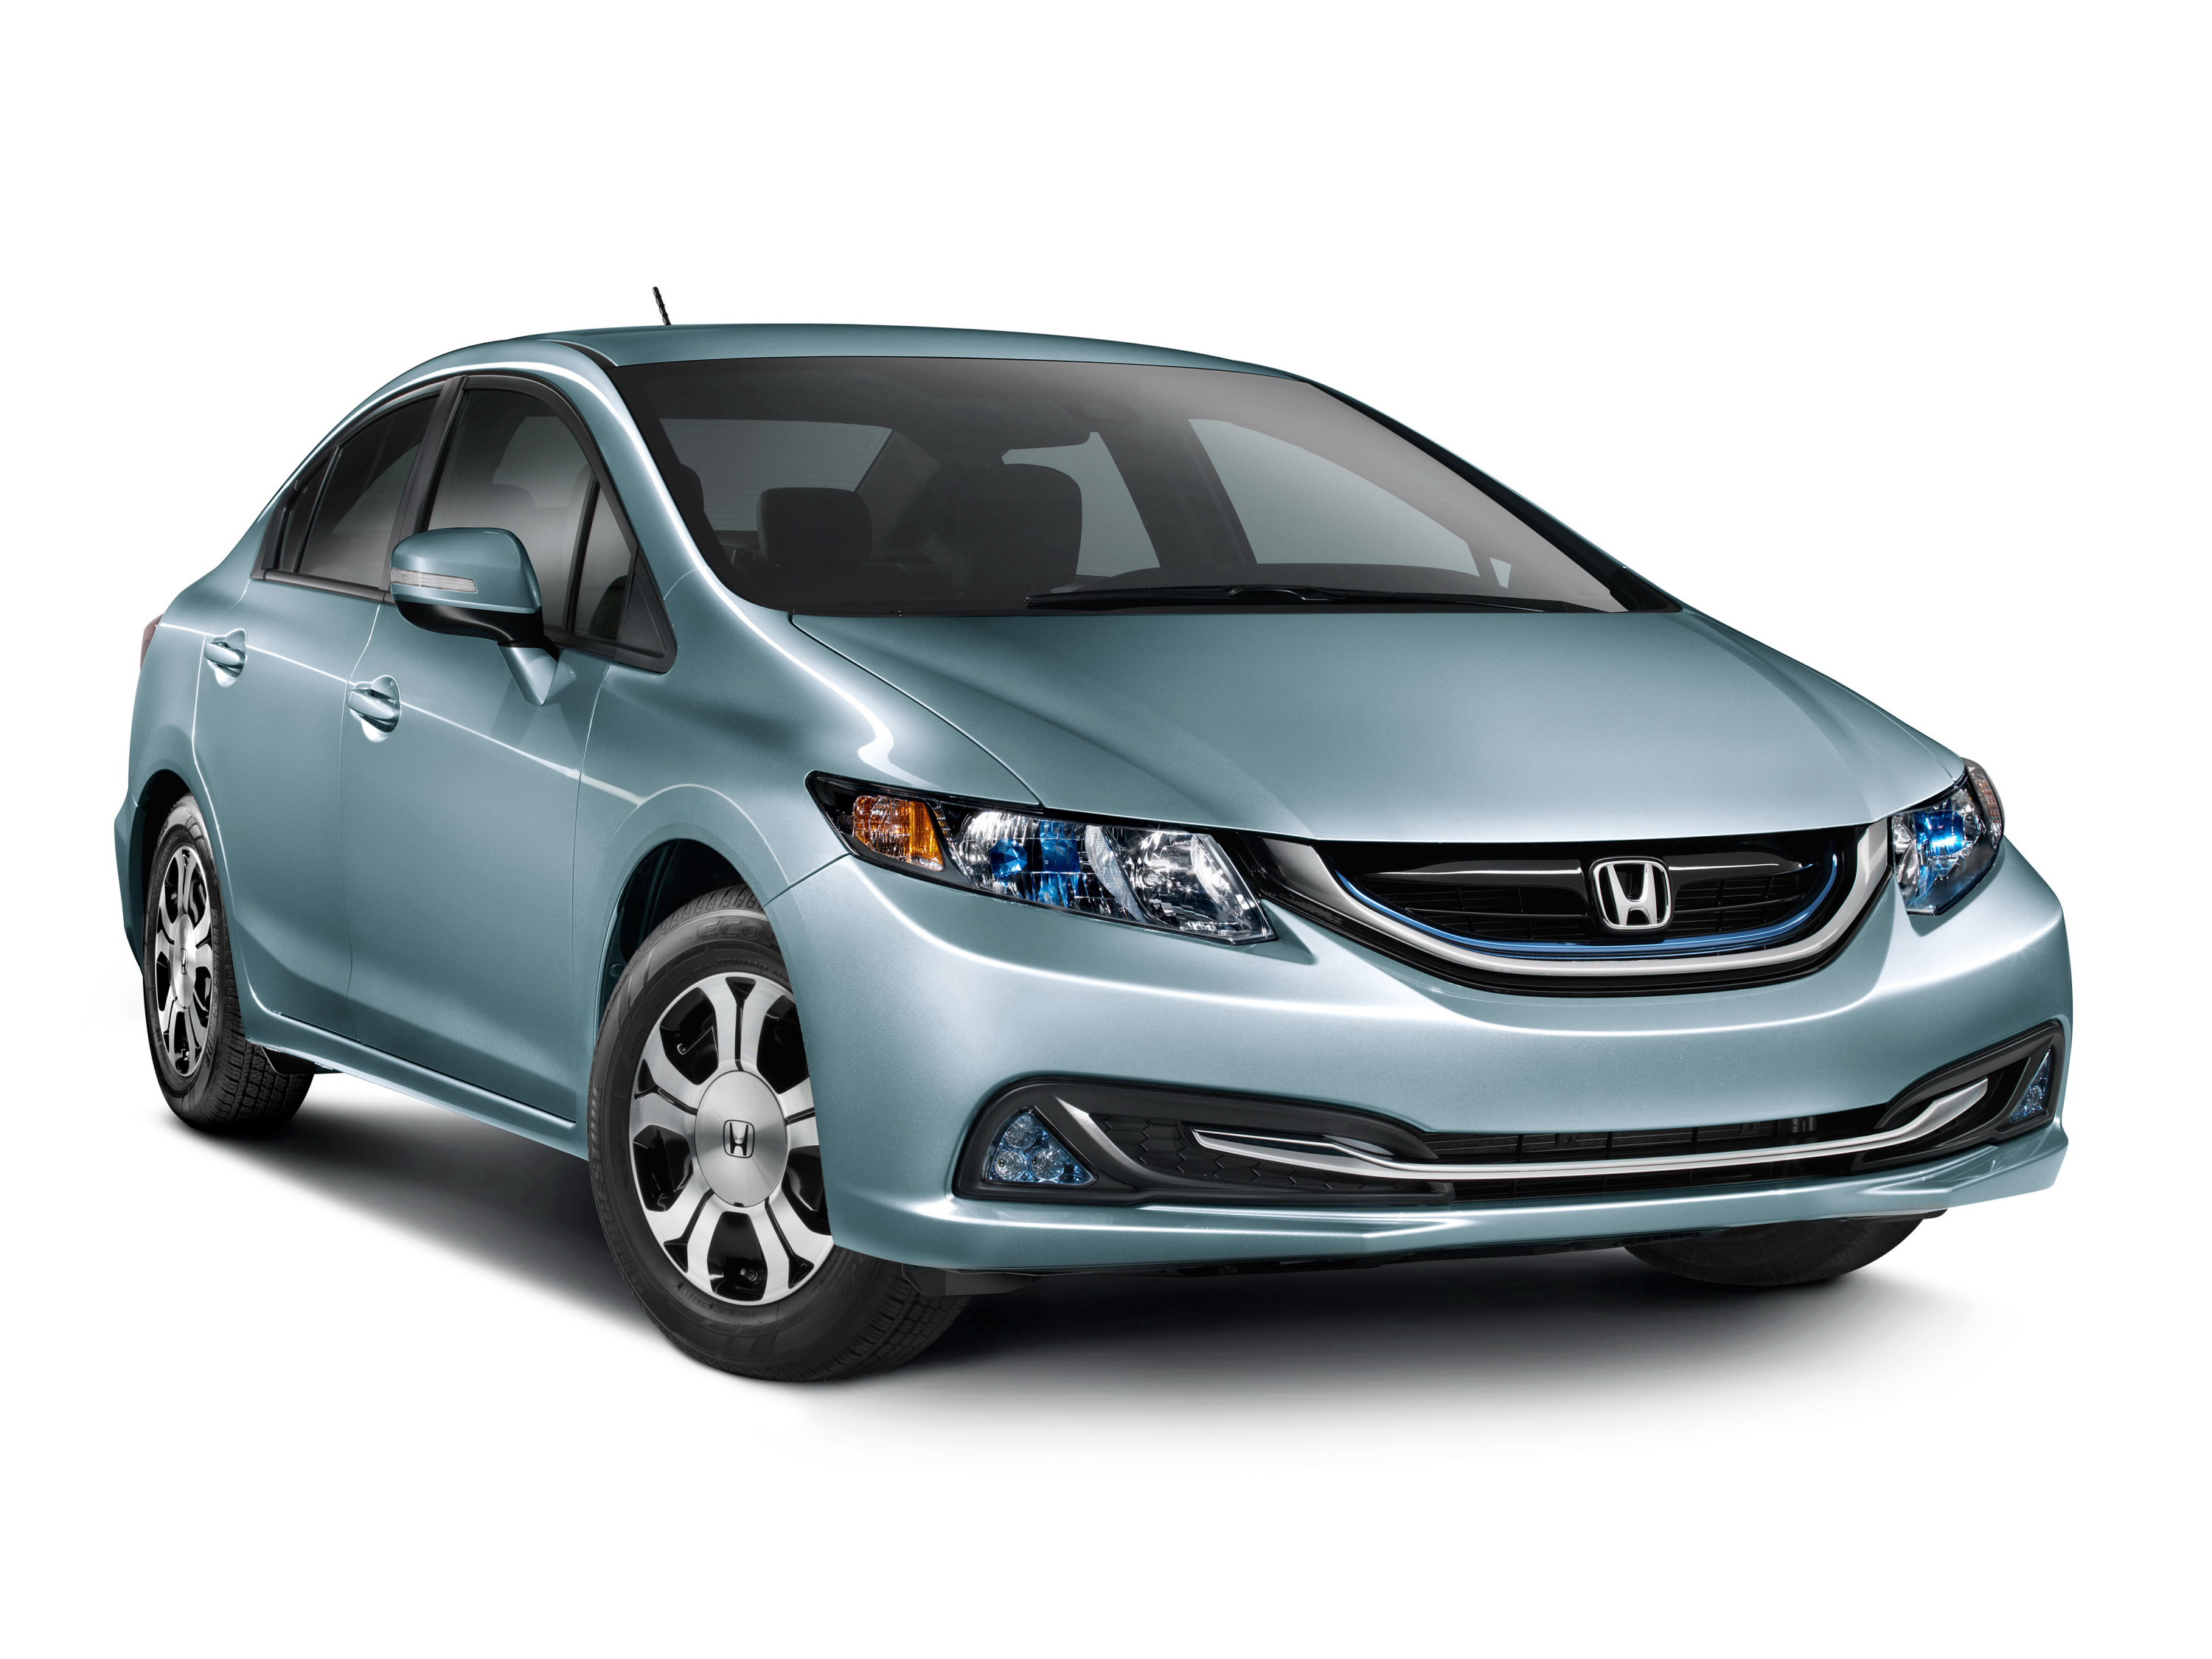 2014 honda civic hybrid review top speed. Black Bedroom Furniture Sets. Home Design Ideas